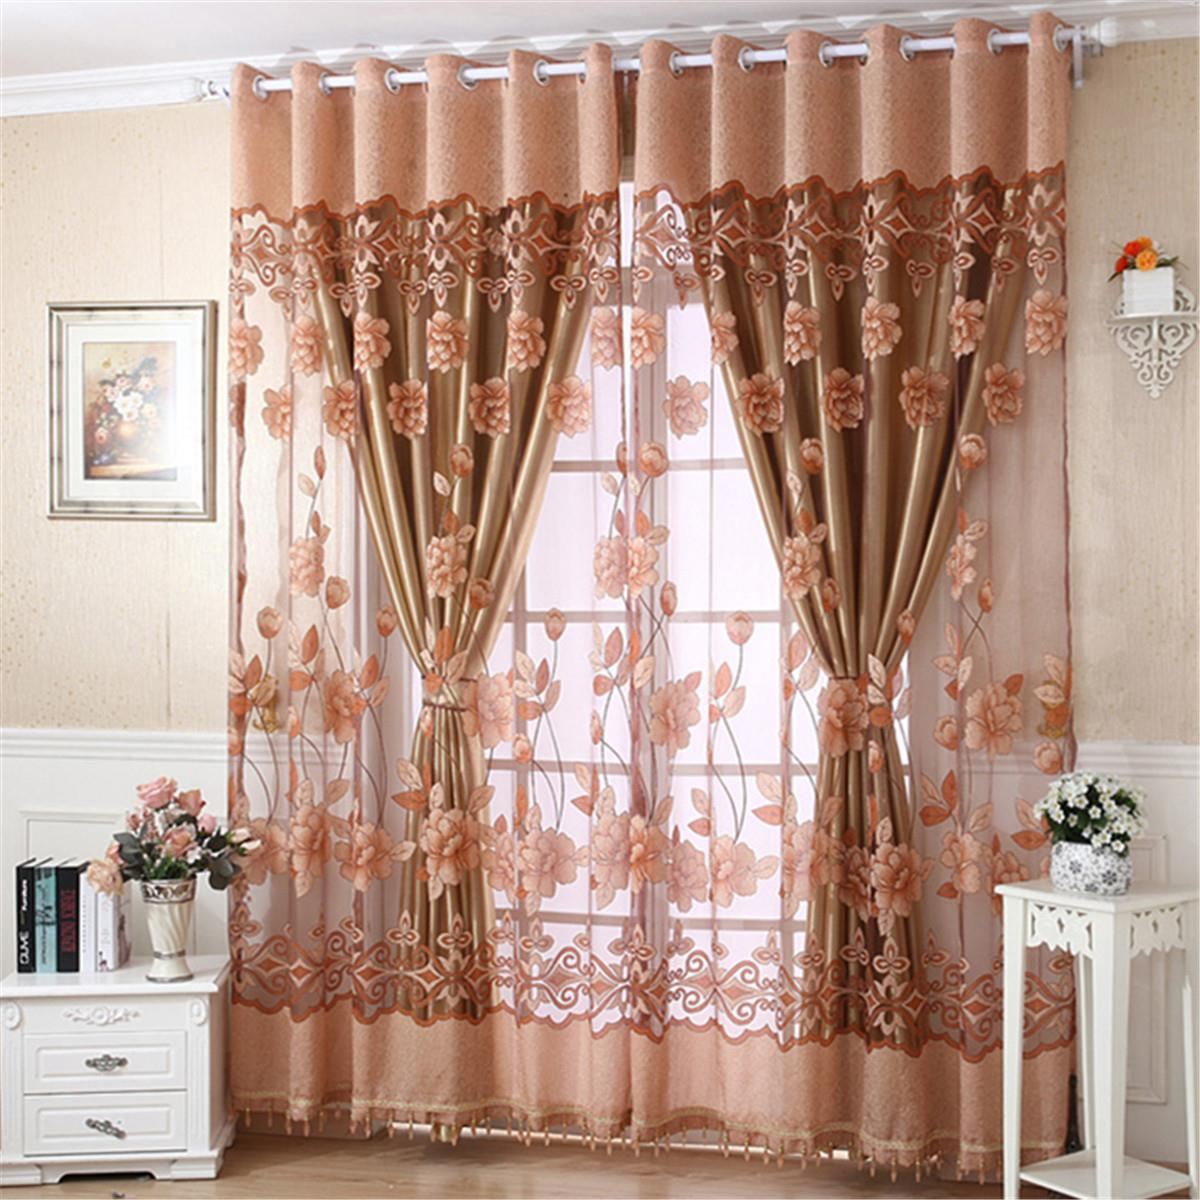 valances windows blinds using jamb bedroom white exquisite for ideas design rectangular epic also decorating valance and interior with wooden